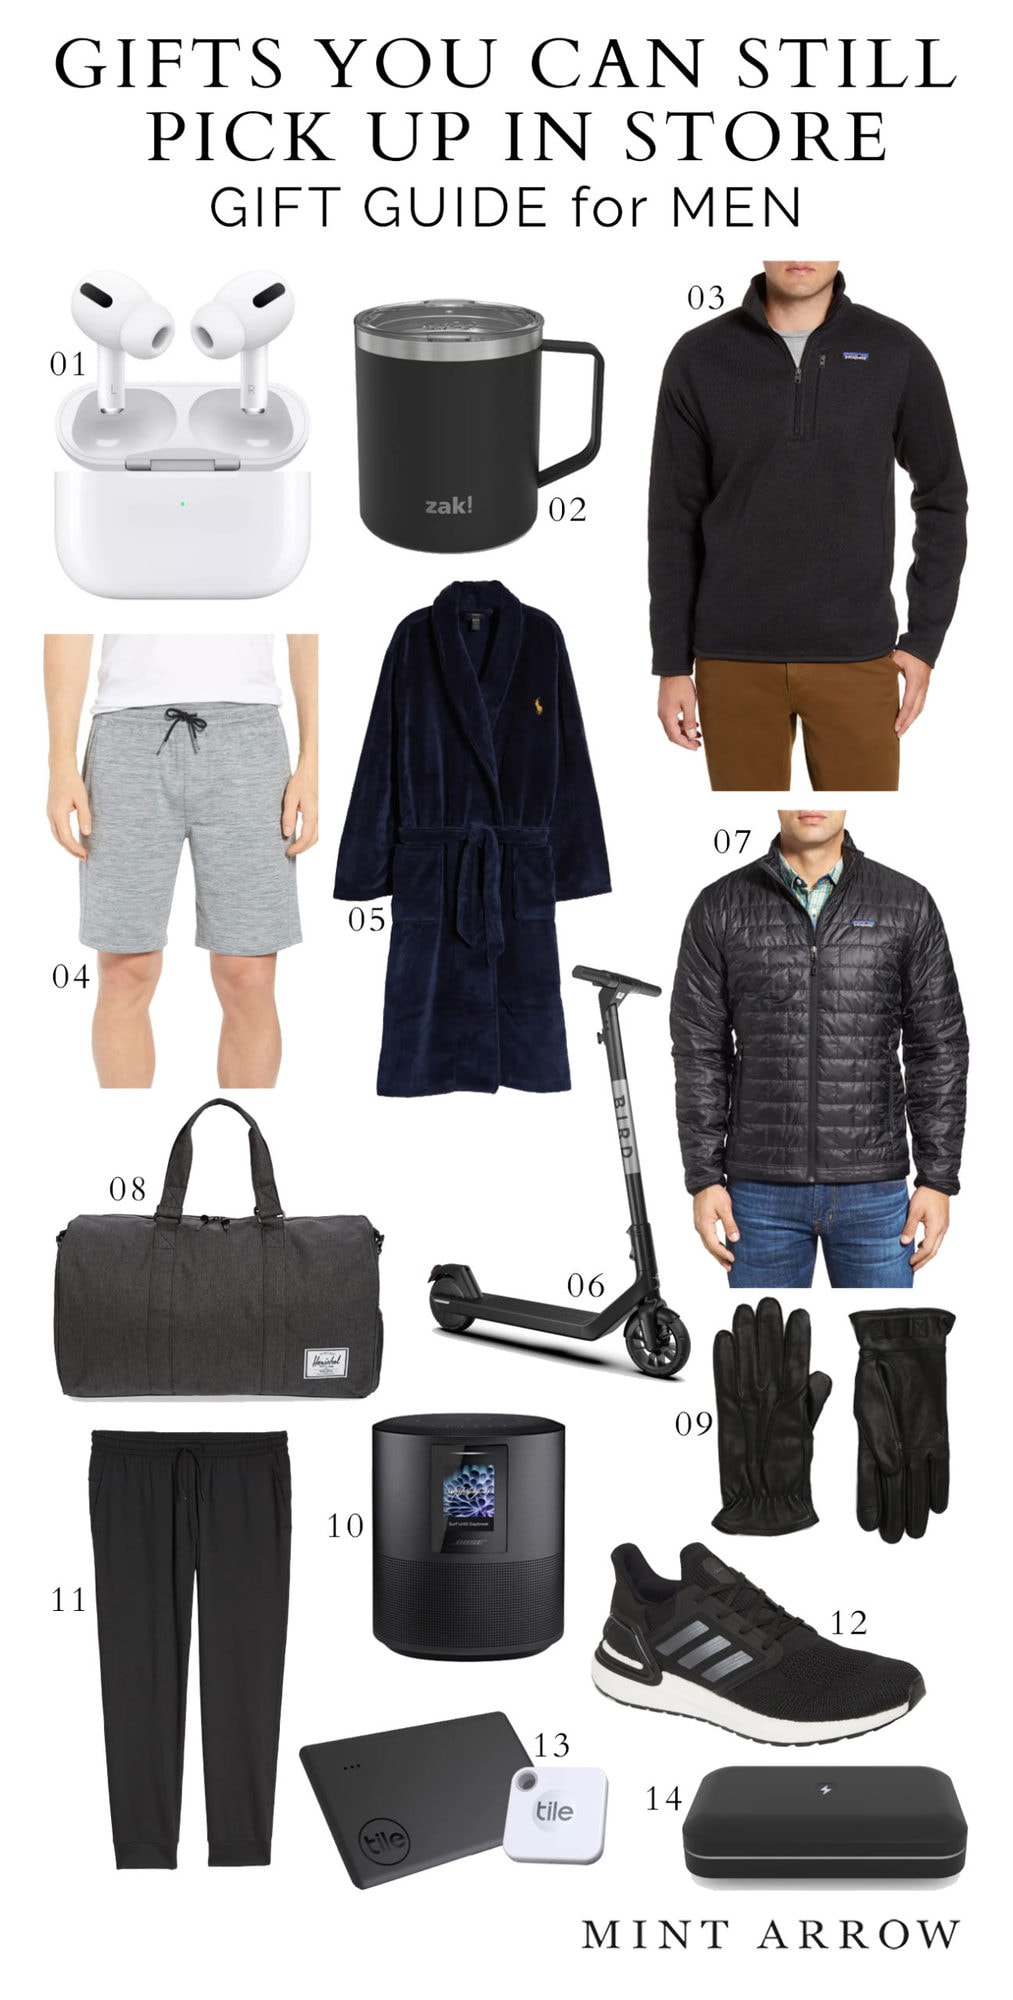 men's gift guide last minute gifts